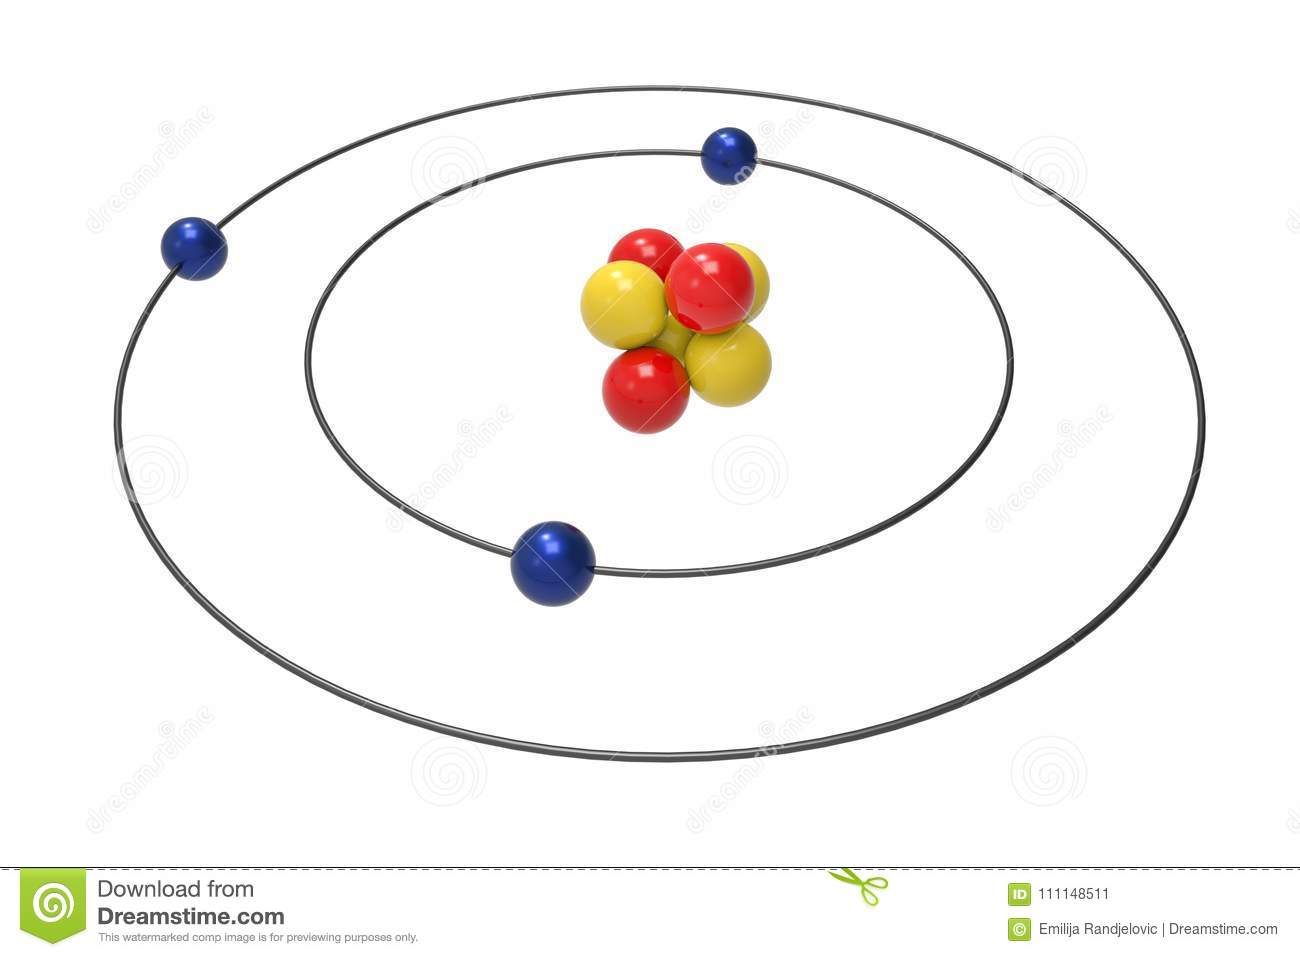 bohr diagram for lithium fisher 400 art paper model of atom with proton neutron and electron stock